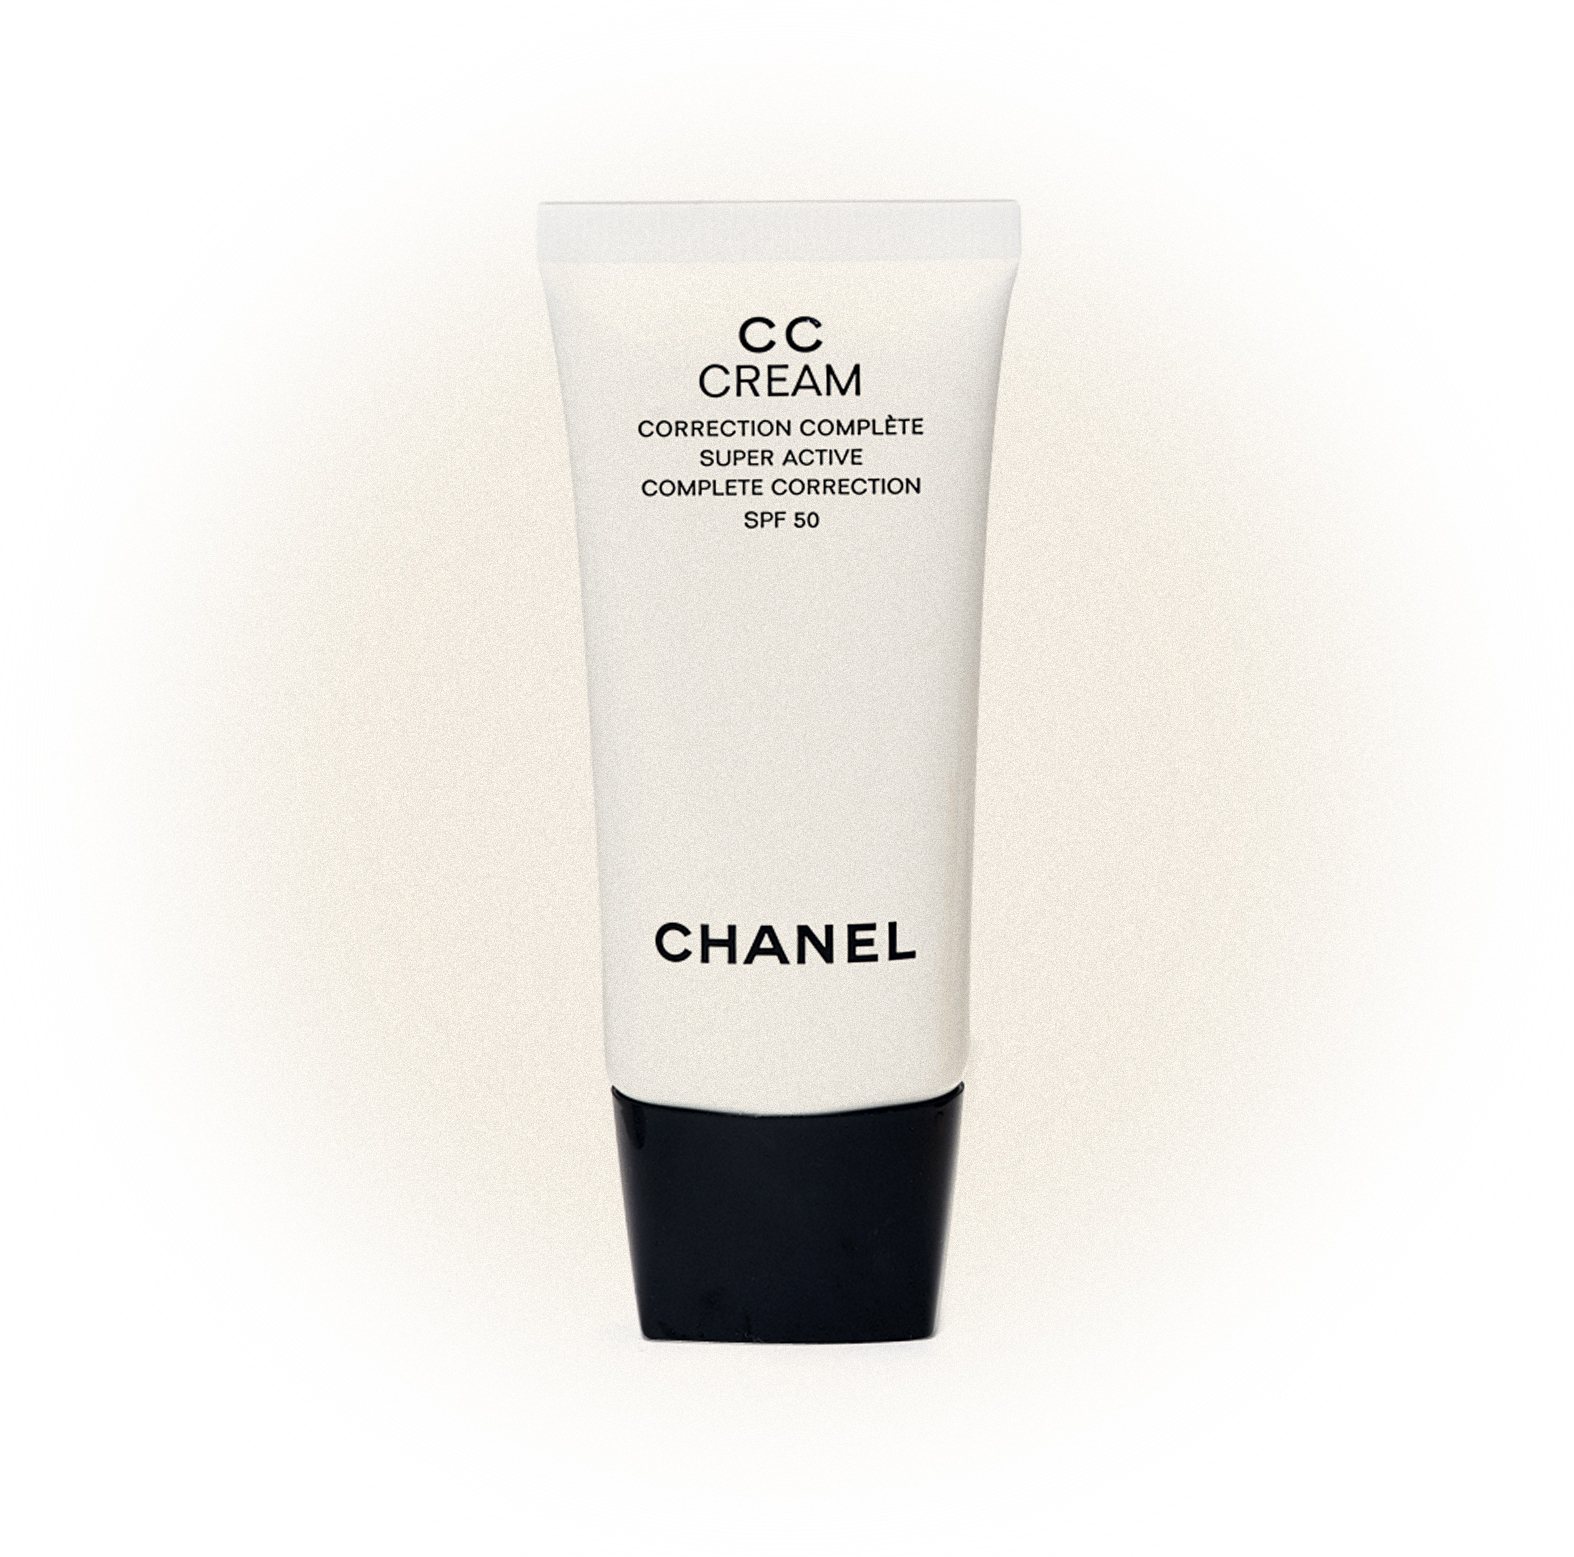 CC Cream SPF 50, Chanel